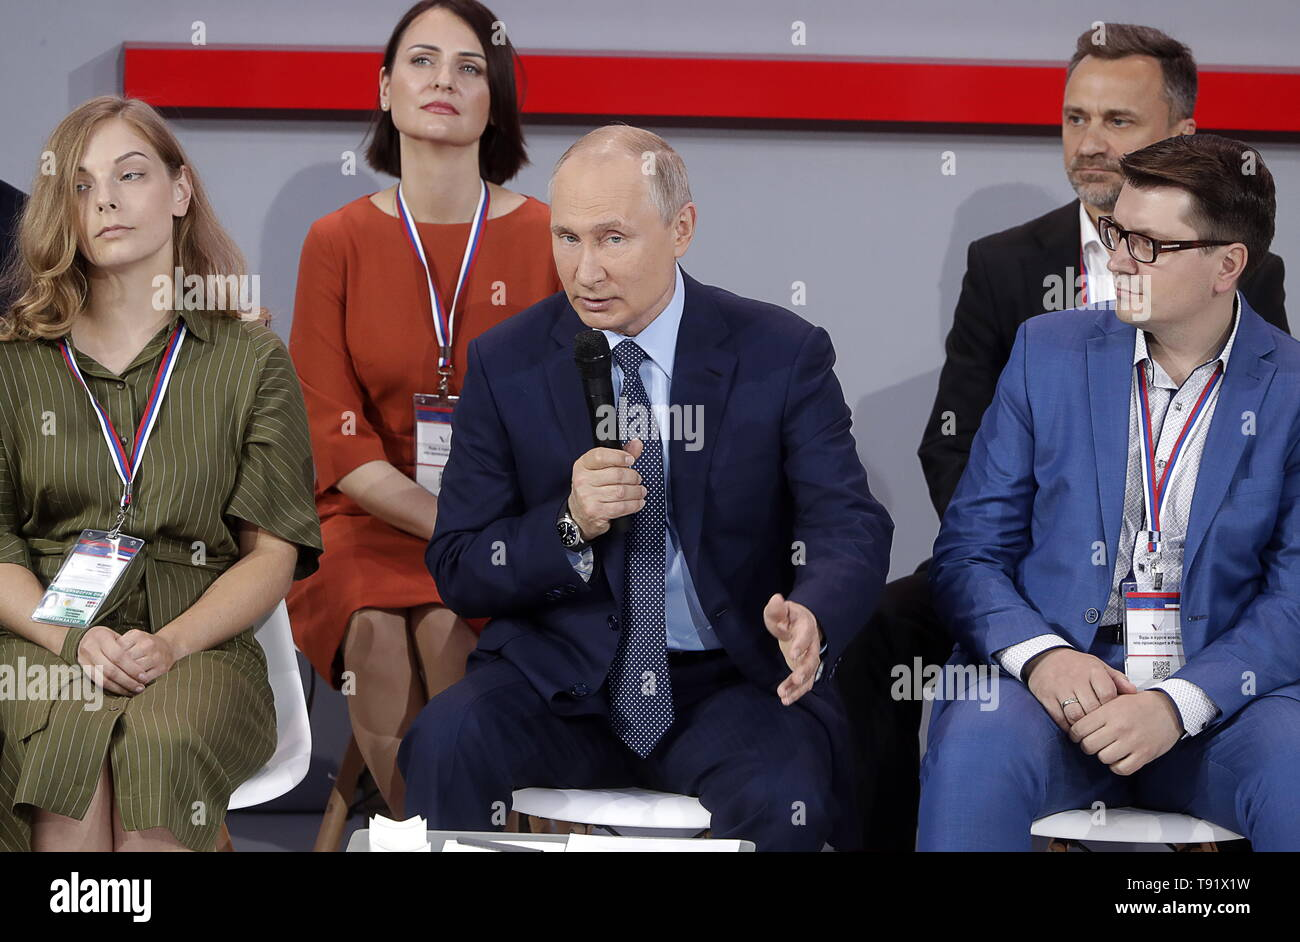 Sochi, Russia. 16th May, 2019. SOCHI, RUSSIA - MAY 16, 2019: Russia's President Vladimir Putin (C) attends the plenary meeting at the Independent Local and Regional Media Forum held by the All-Russian People's Front. Mikhail Metzel/TASS Credit: ITAR-TASS News Agency/Alamy Live News Stock Photo